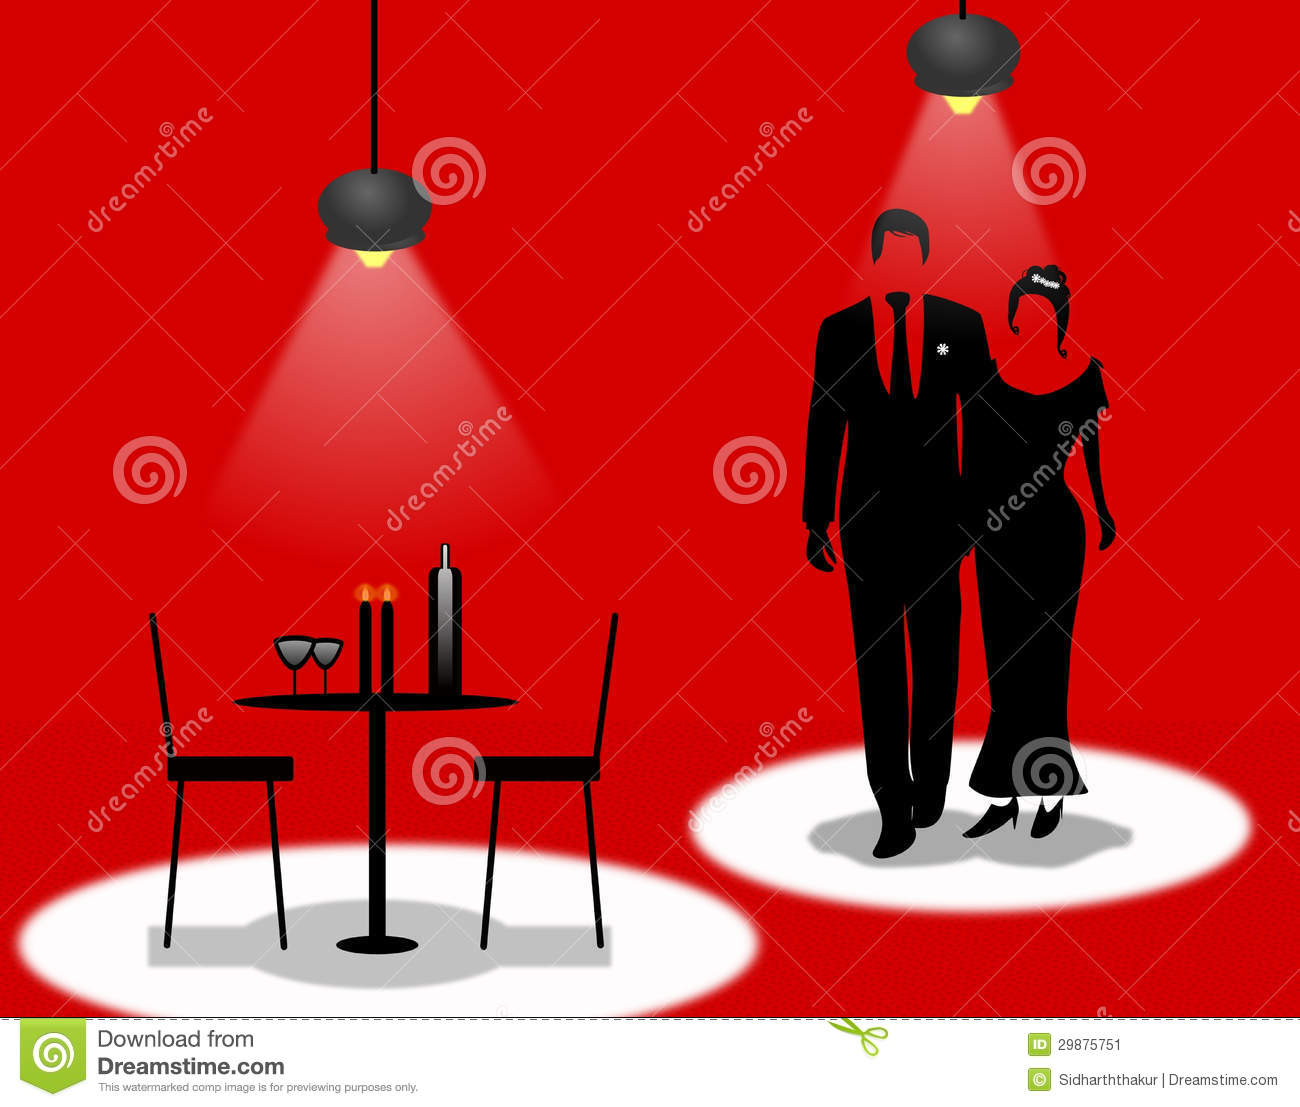 A Romantic Dinner Date Stock Image Image 29875751